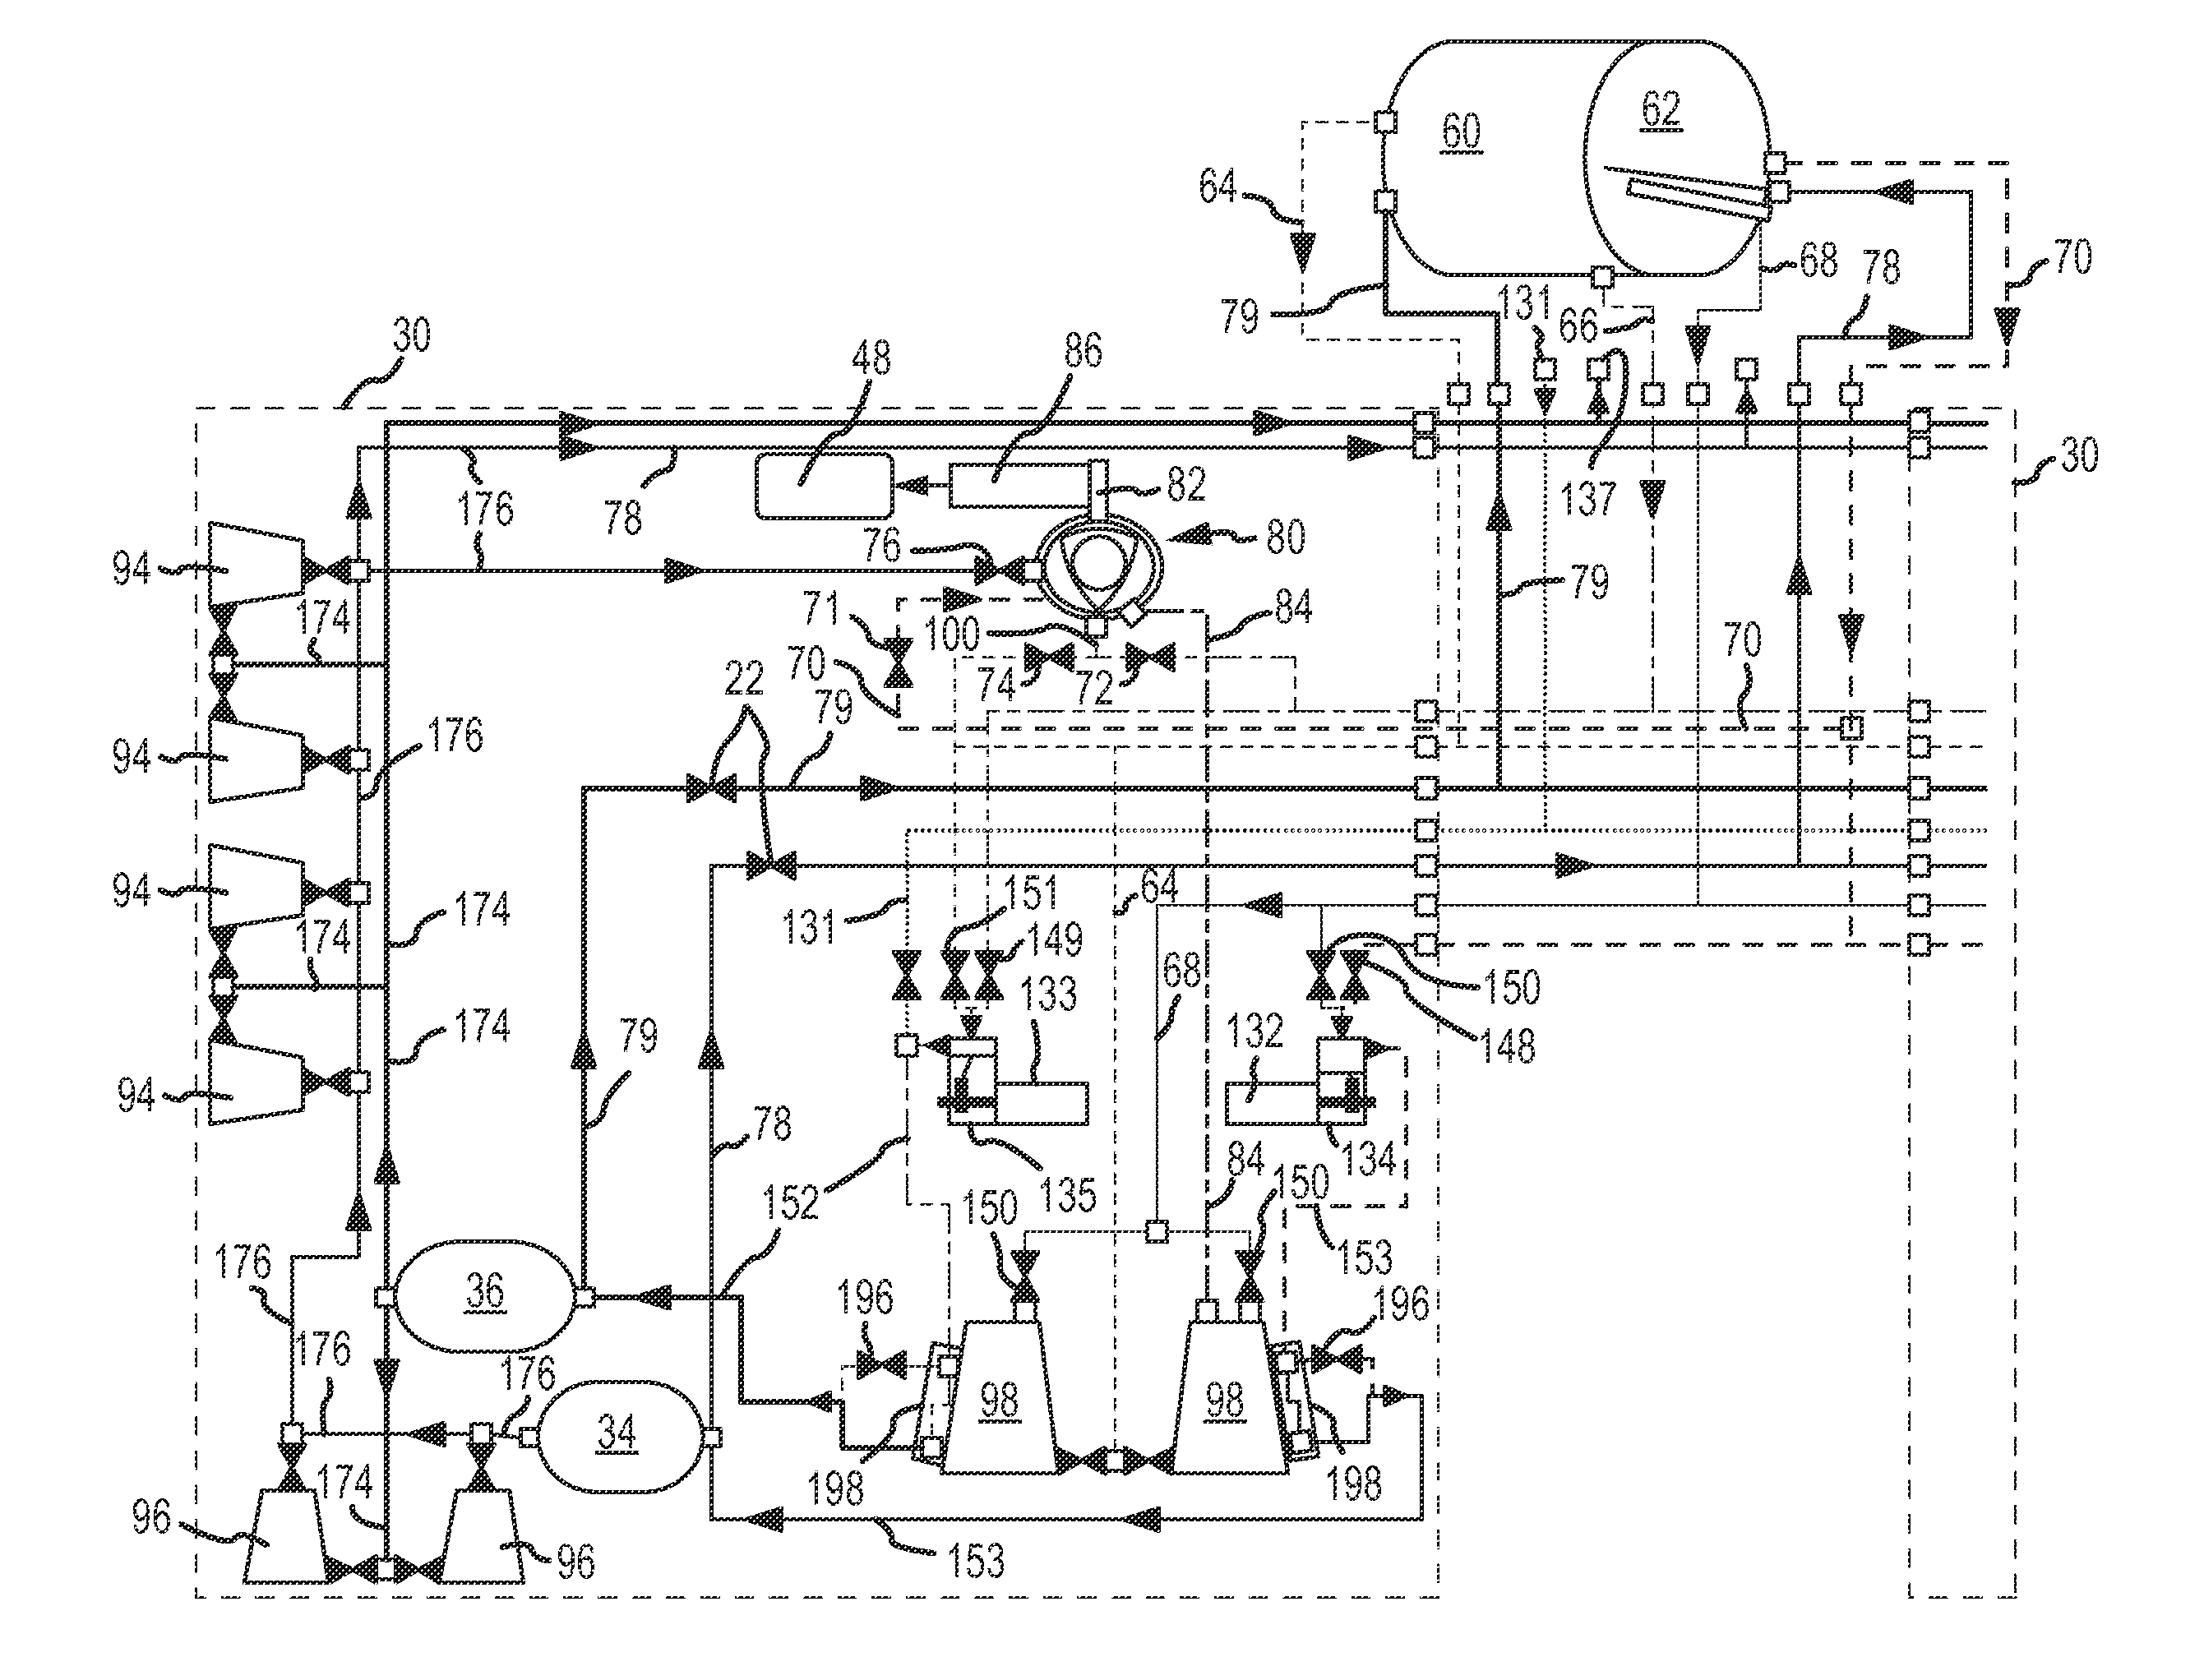 US20120227374A1 20120913 D00000?resize\\\=665%2C507 limitorque mov wiring diagram limitorque wiring of limit switches limitorque wiring diagram at fashall.co